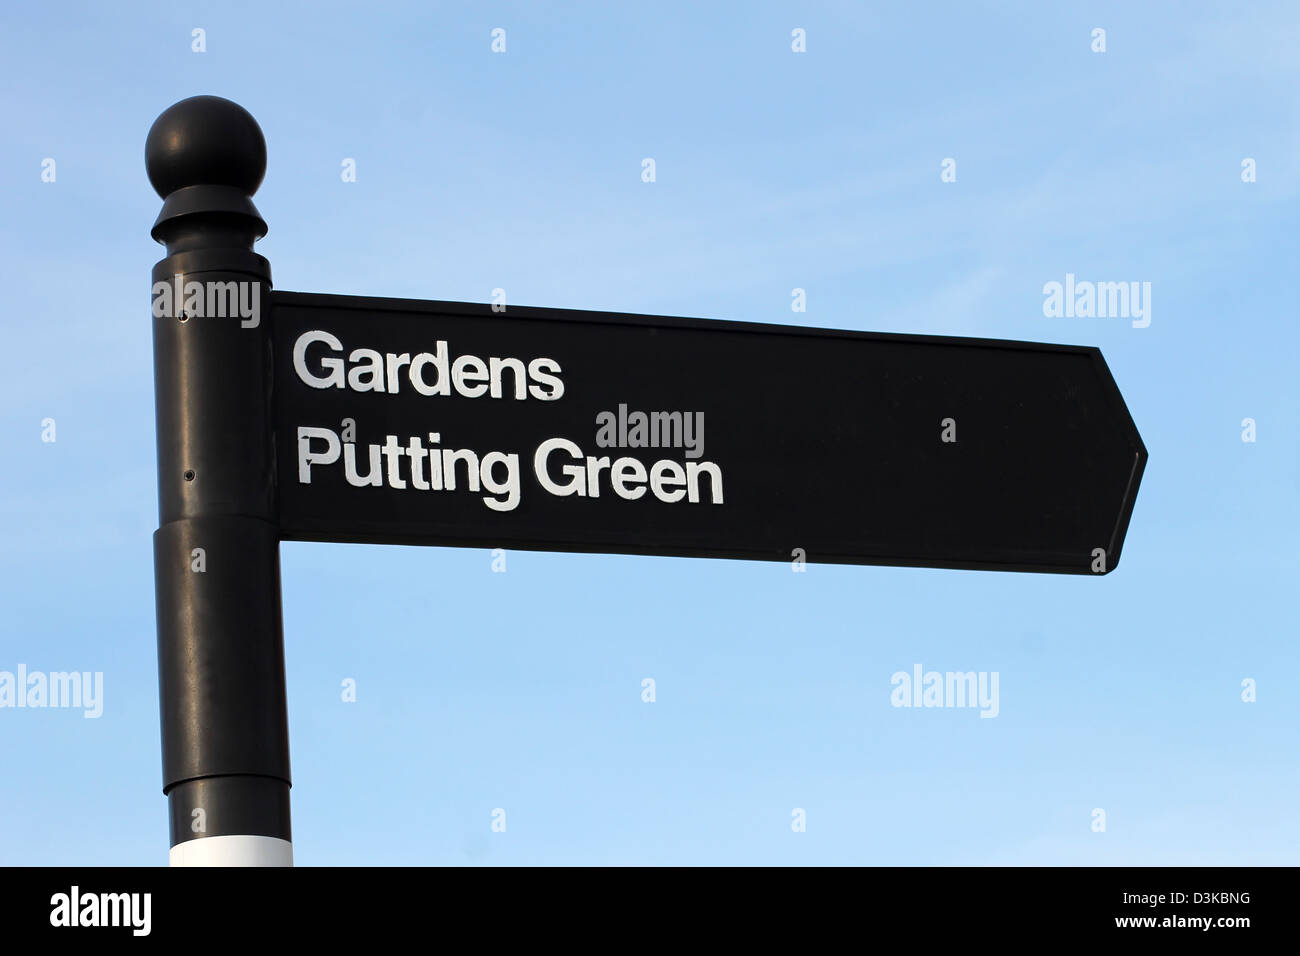 Traditional English gardens and putting green sign, blue sky background. - Stock Image